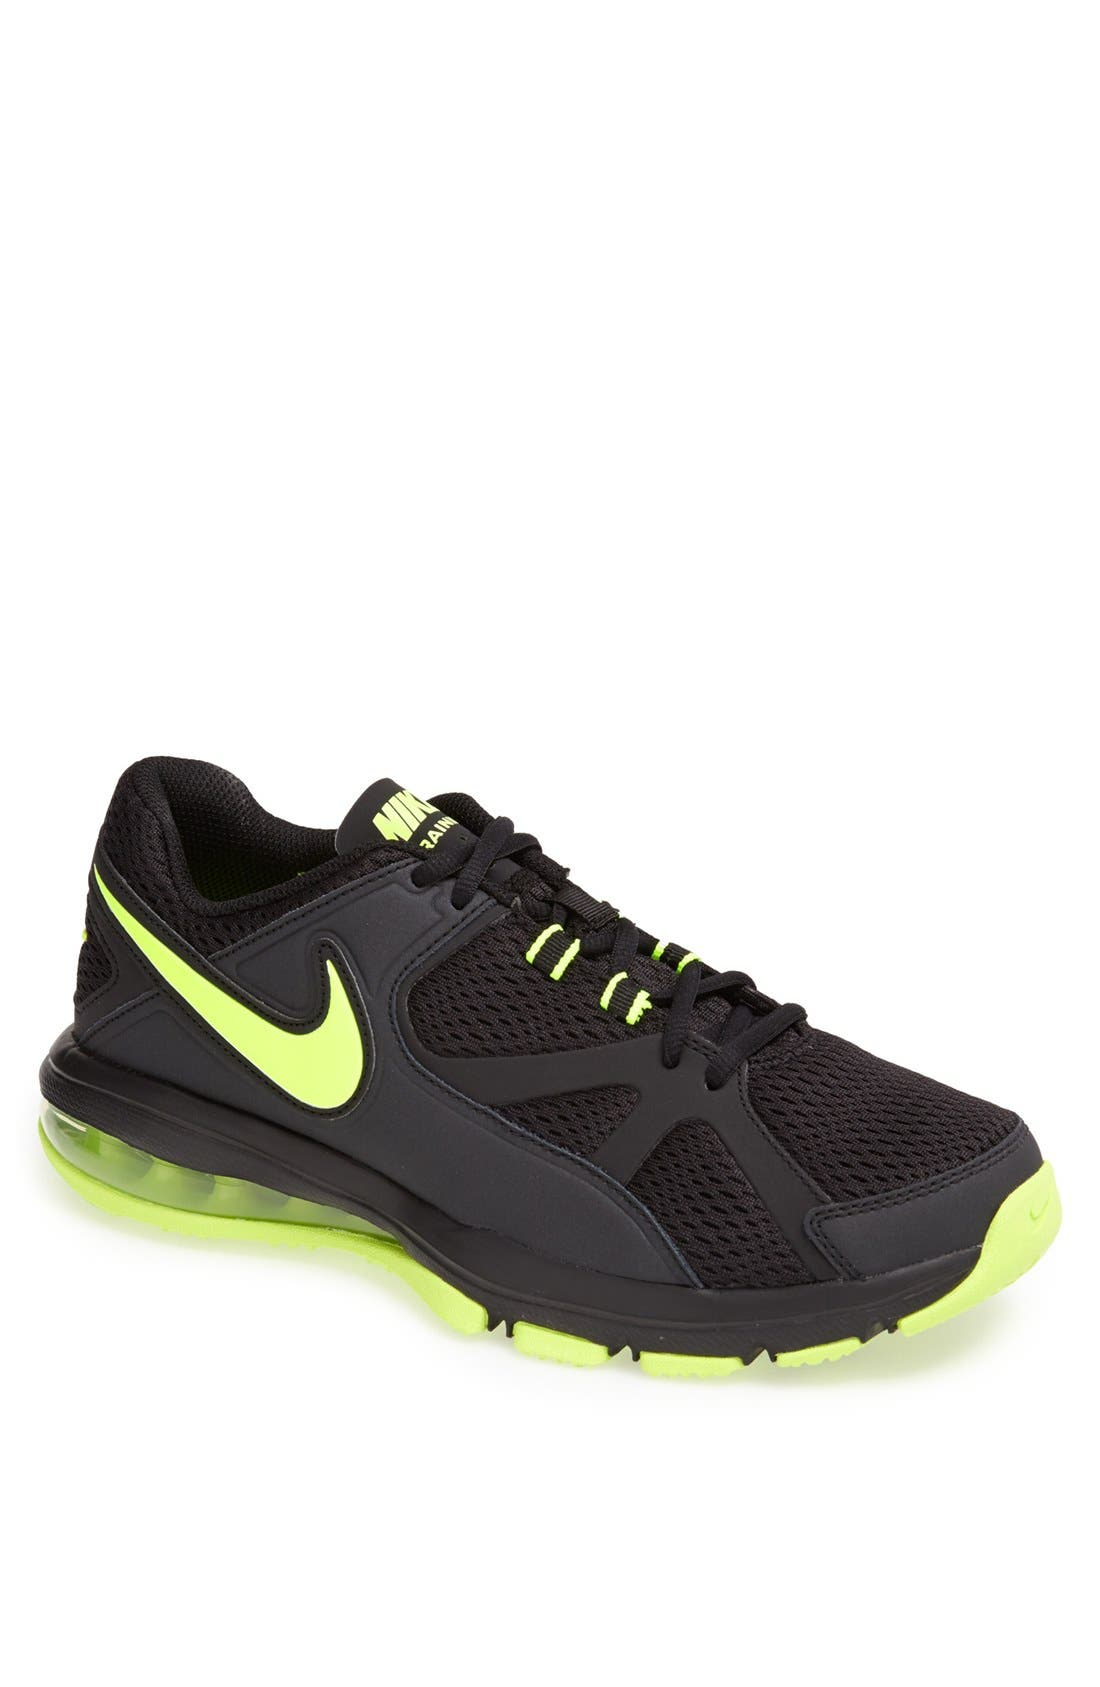 Alternate Image 1 Selected - Nike 'Air Max Compete TR' Training Shoe (Men)